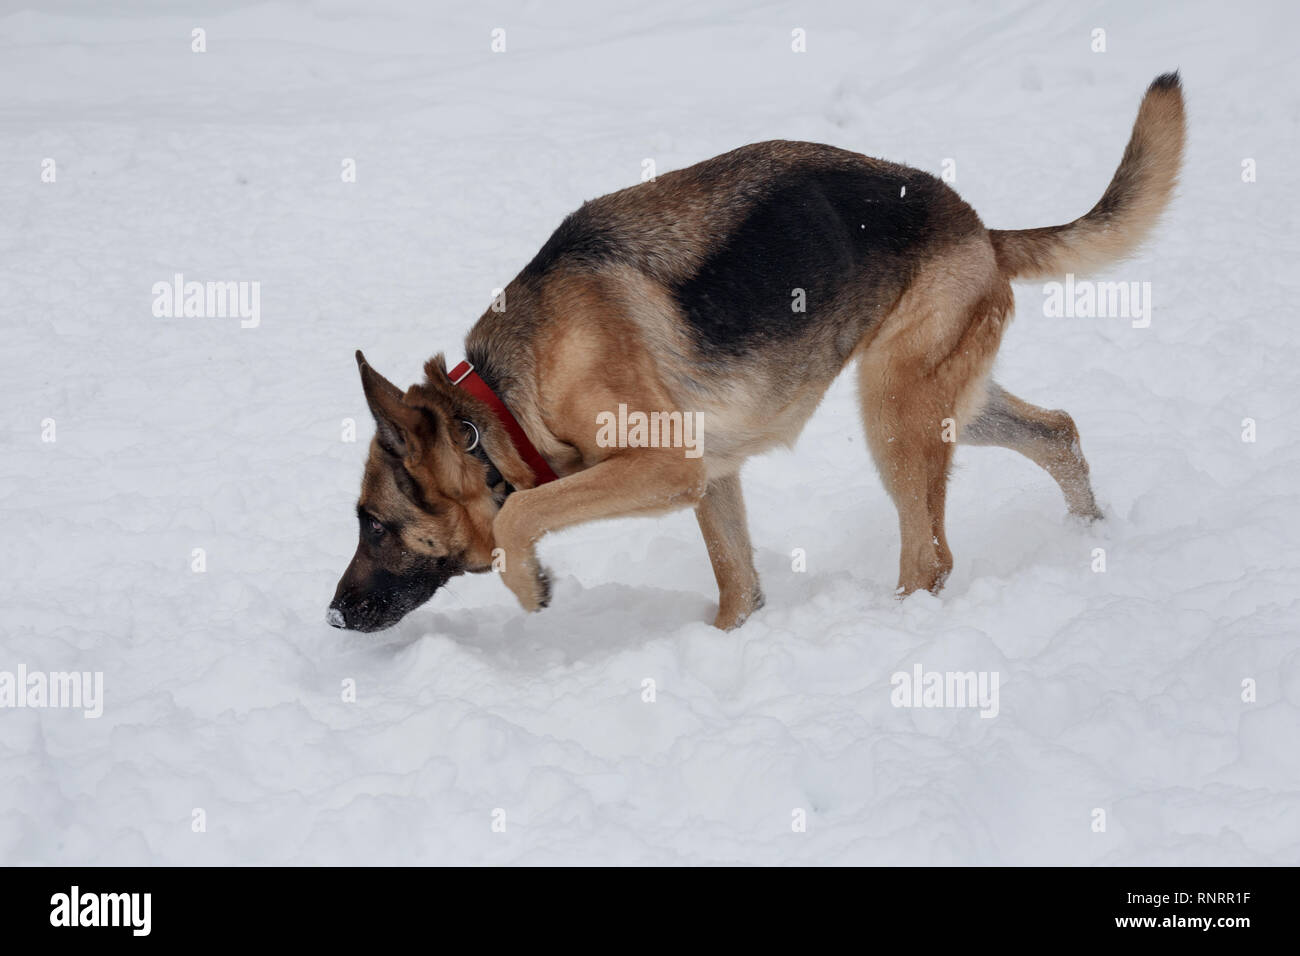 German shepherd is sniffing footprints in the snow. Pet animals. Purebred dog. - Stock Image